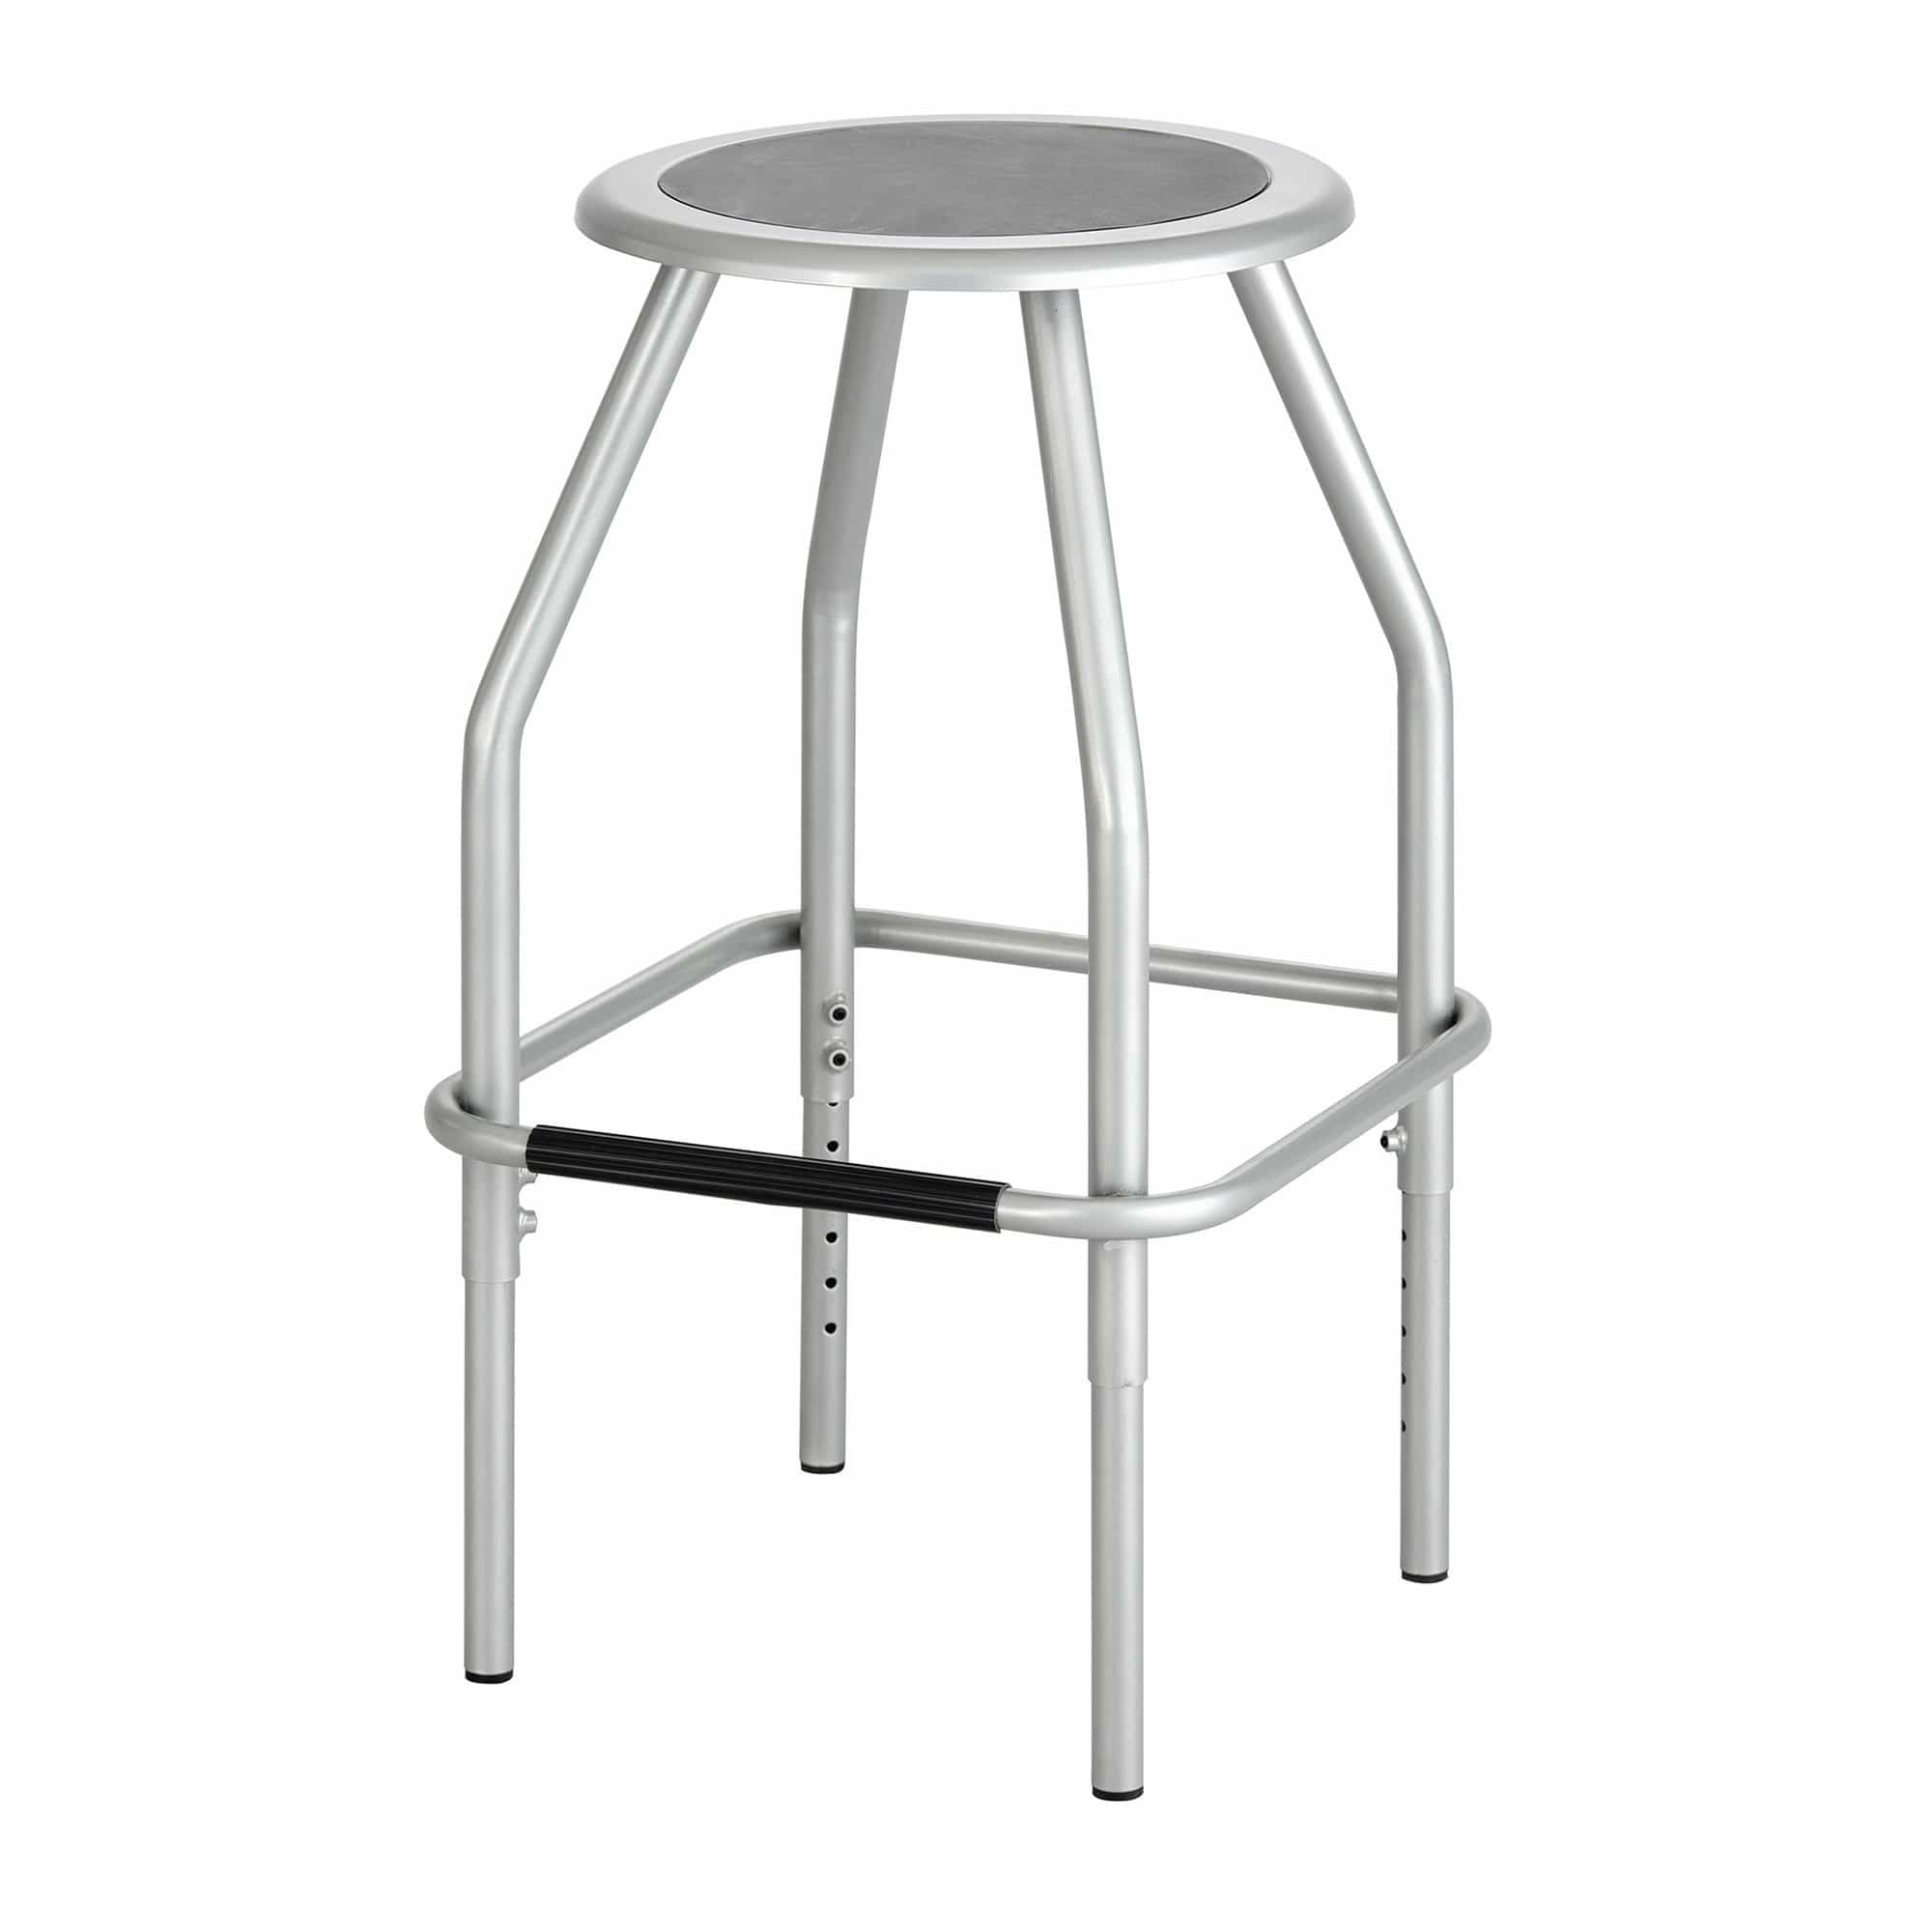 bedinhome - Industrial Seating 250 lbs Weight Diesel Adjustable Height Silver Stool - Safco - Seat Stool